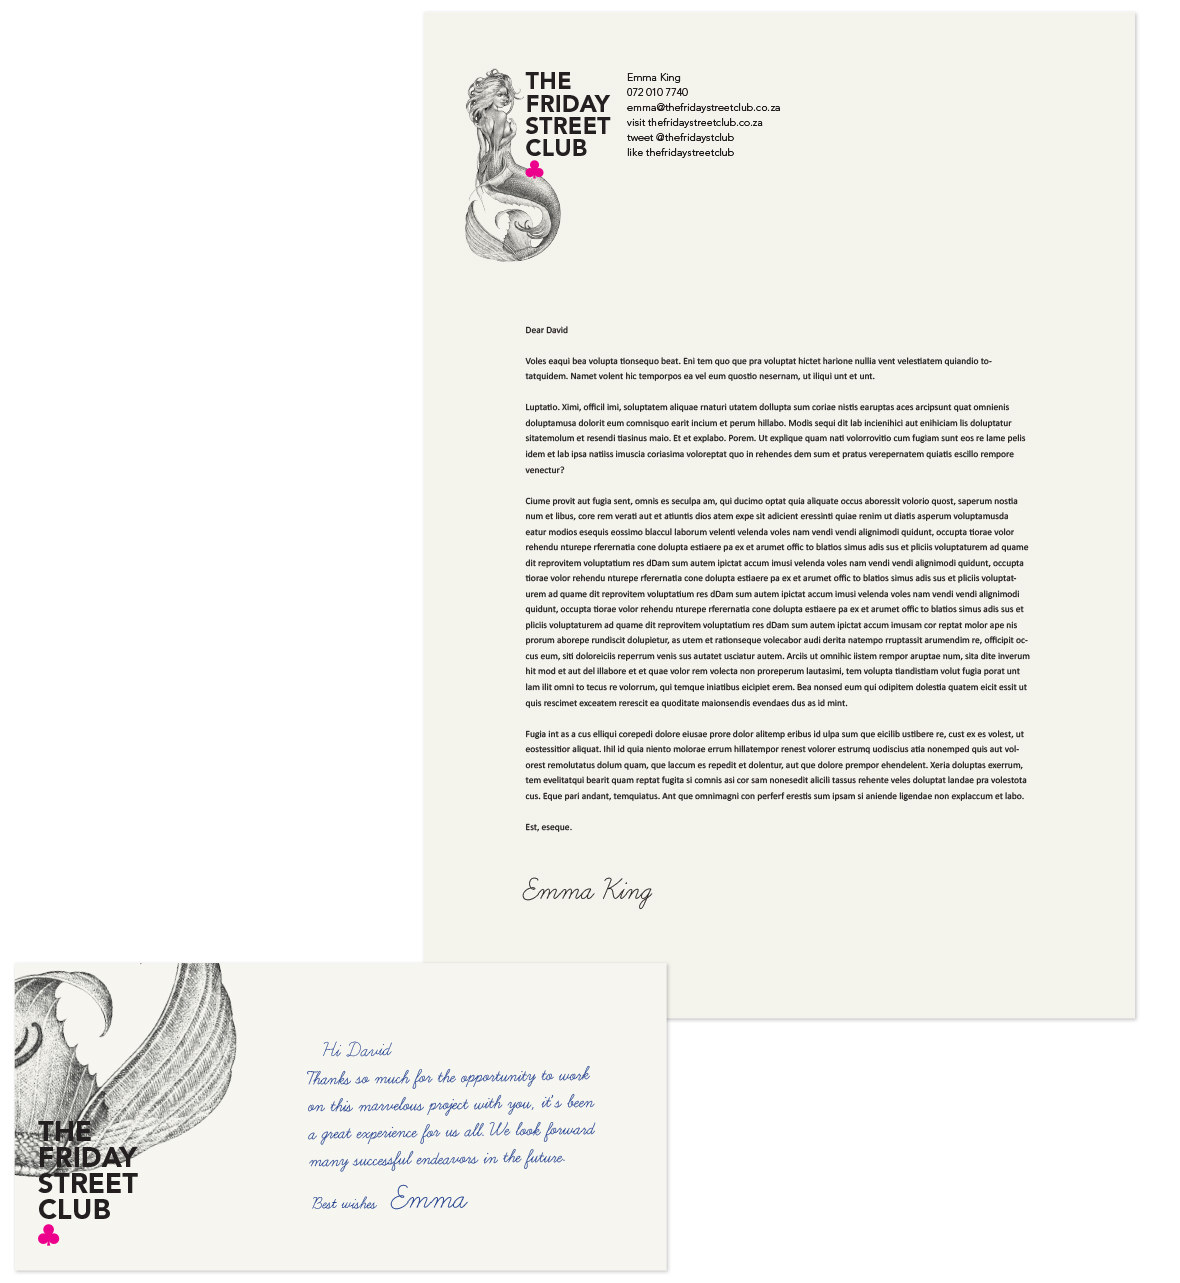 The Friday Street Club Letterhead and Compliment Slip